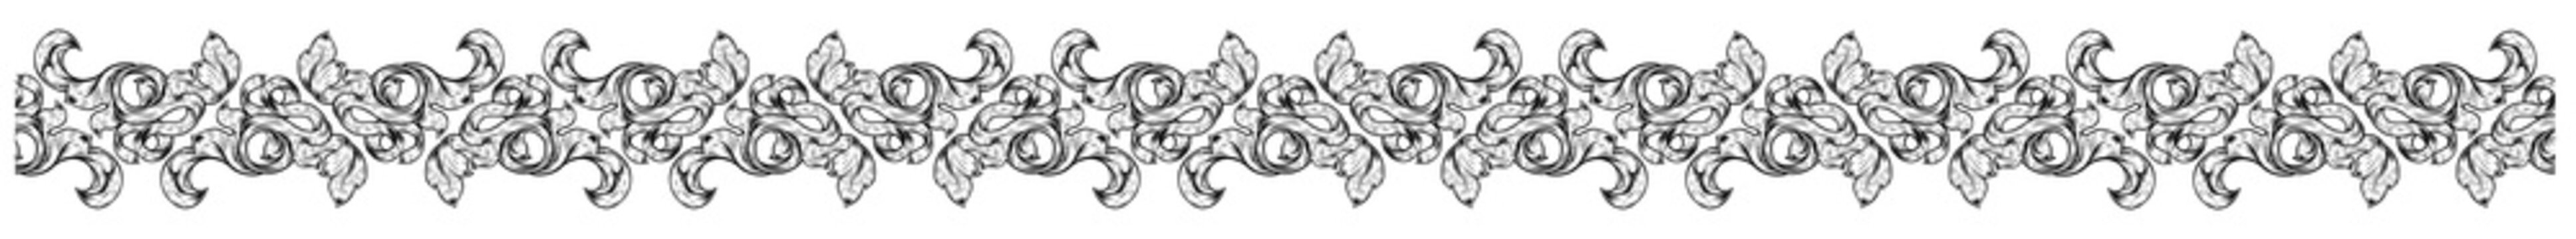 An art nouveau style band border frame floral motif scroll pattern that can be seamlessly tiled. In a vintage style